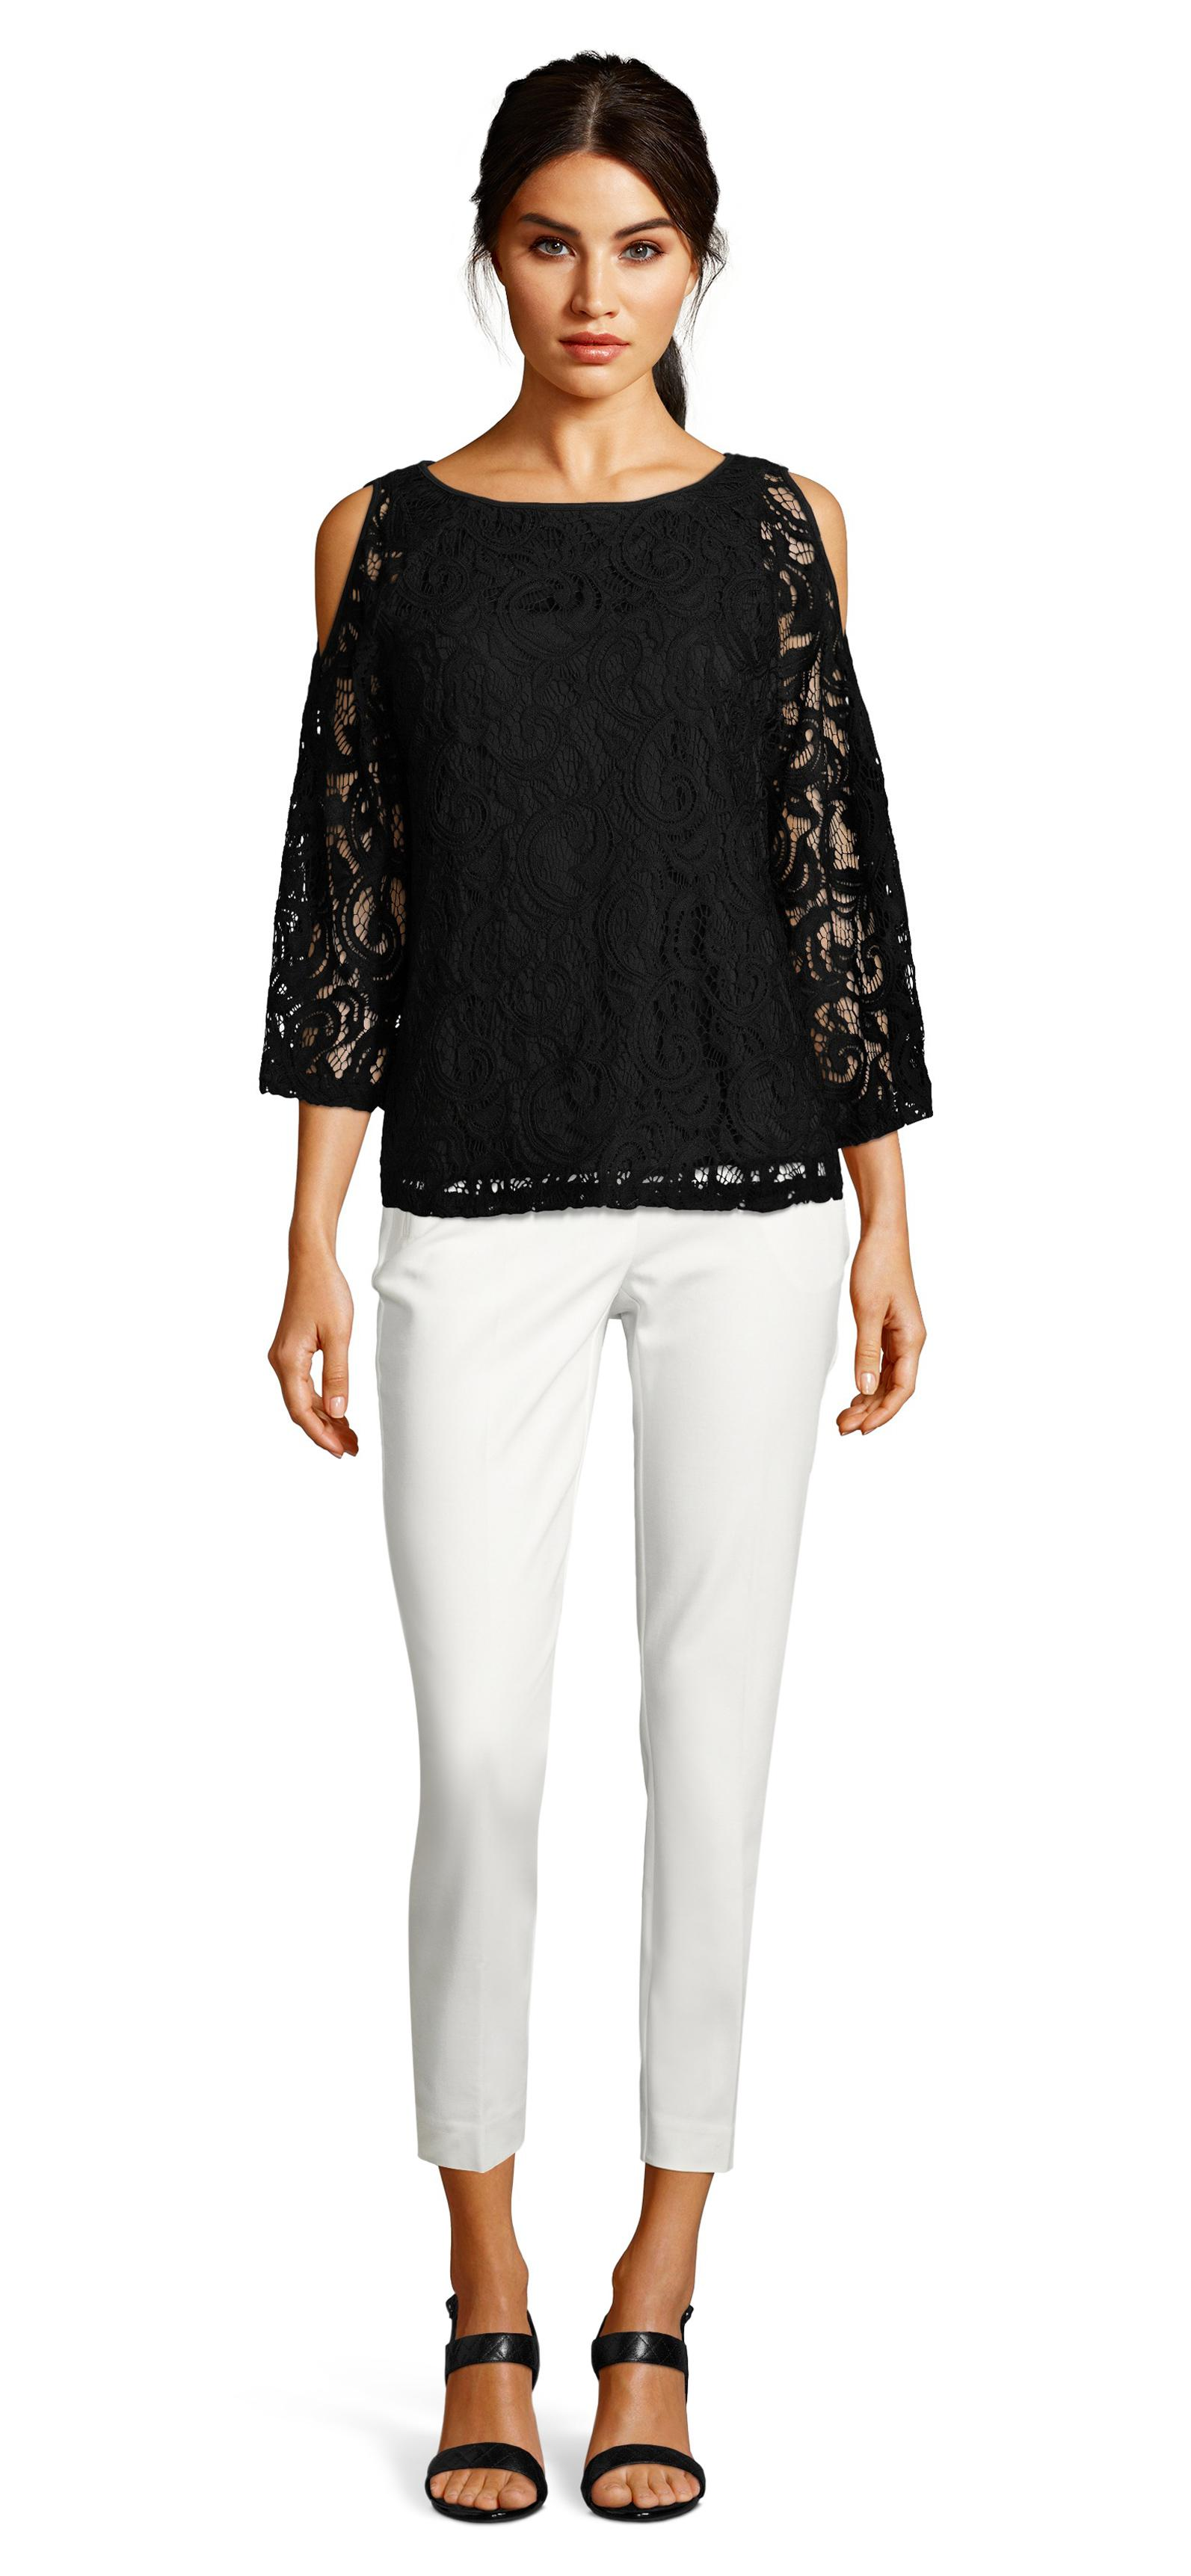 acdb1bdf3fabb8 Lyst - Adrianna Papell Lace Top With Sheer Long Cold Shoulder ...